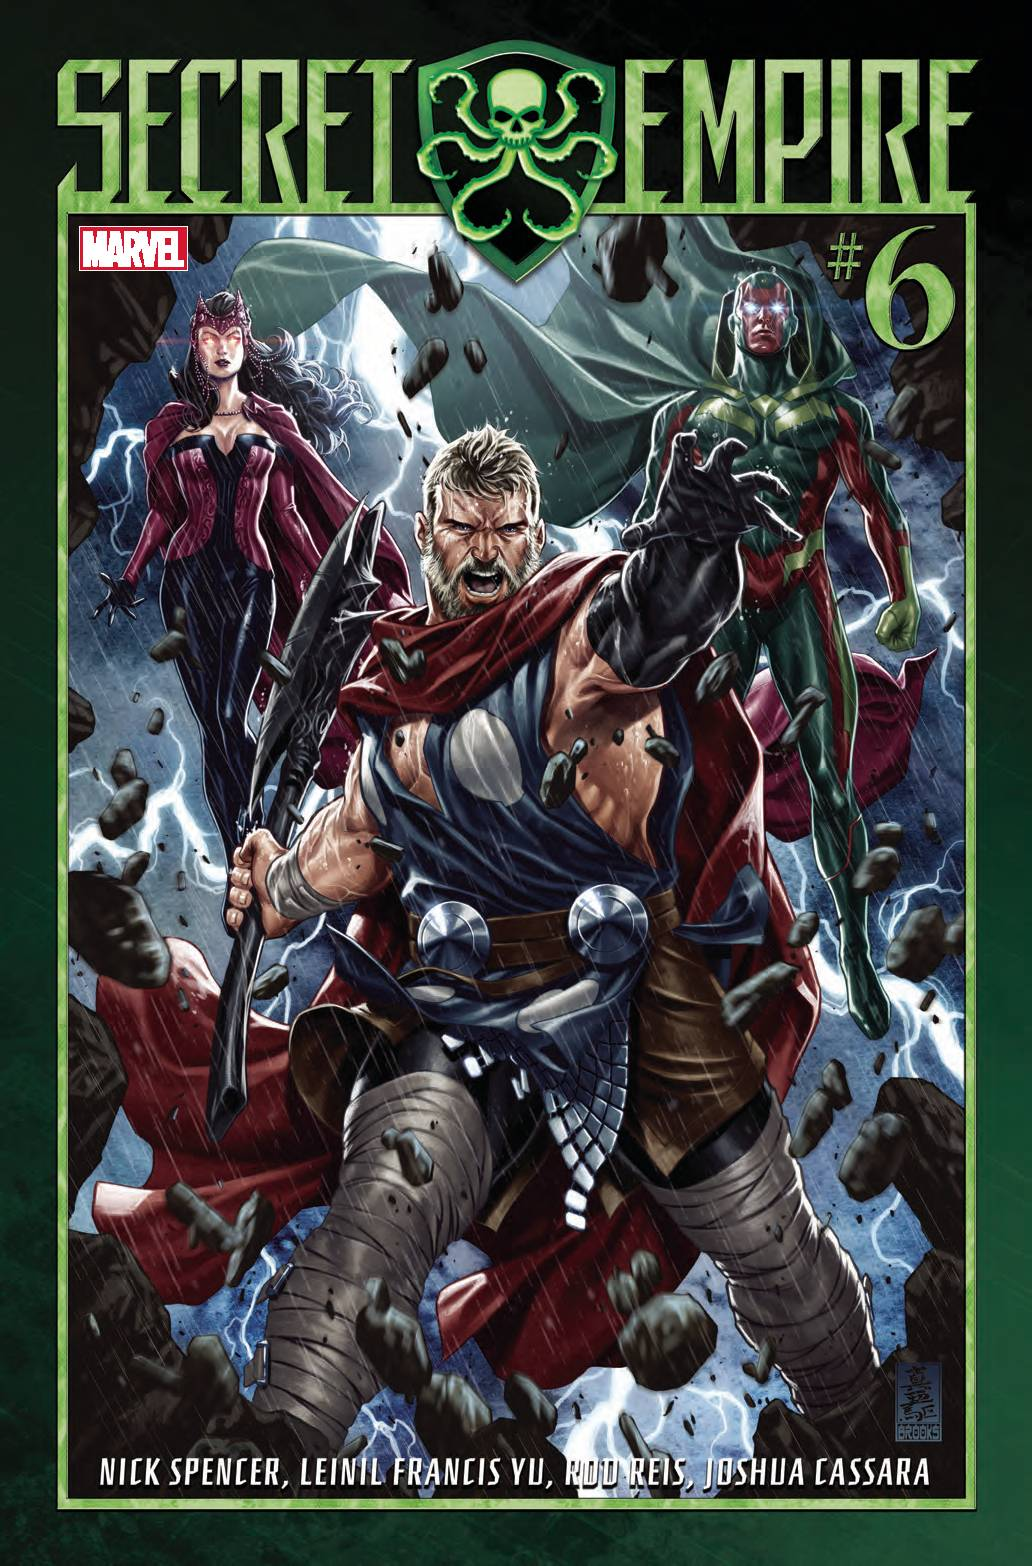 SECRET EMPIRE #6 (OF 10) - MARVEL COMICSWritten by Nick SpenderArt by Leinil Francis YuThe unworthy, the untrusted, the unstable - this is their day! BEWARE THE SECRET EMPIRE!